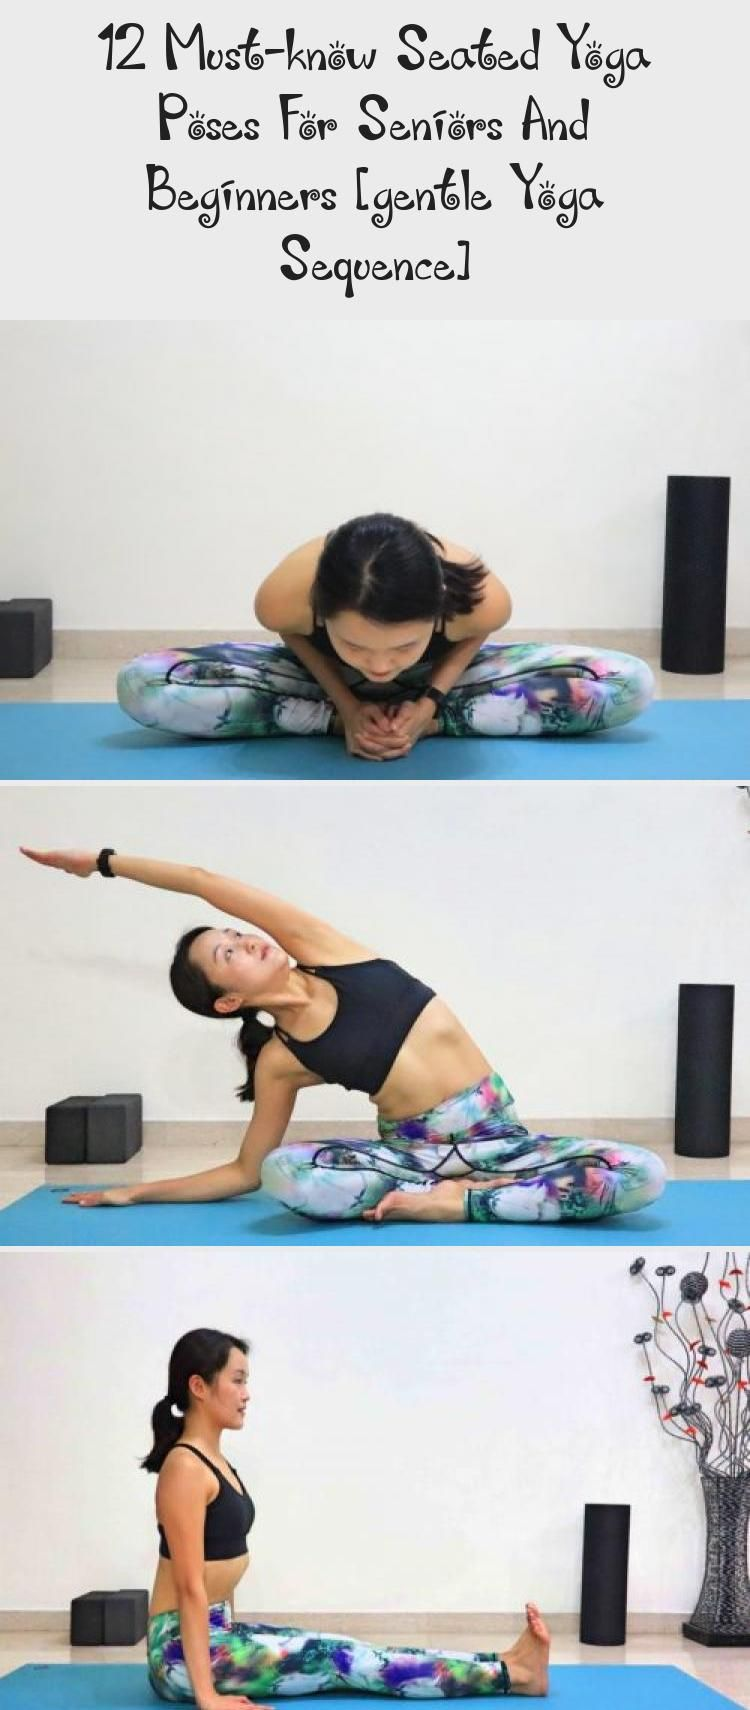 12 Must Know Seated Yoga Poses For Seniors And Beginners Gentle Yoga Sequence In 2020 Seated Yoga Poses Gentle Yoga Yoga Poses